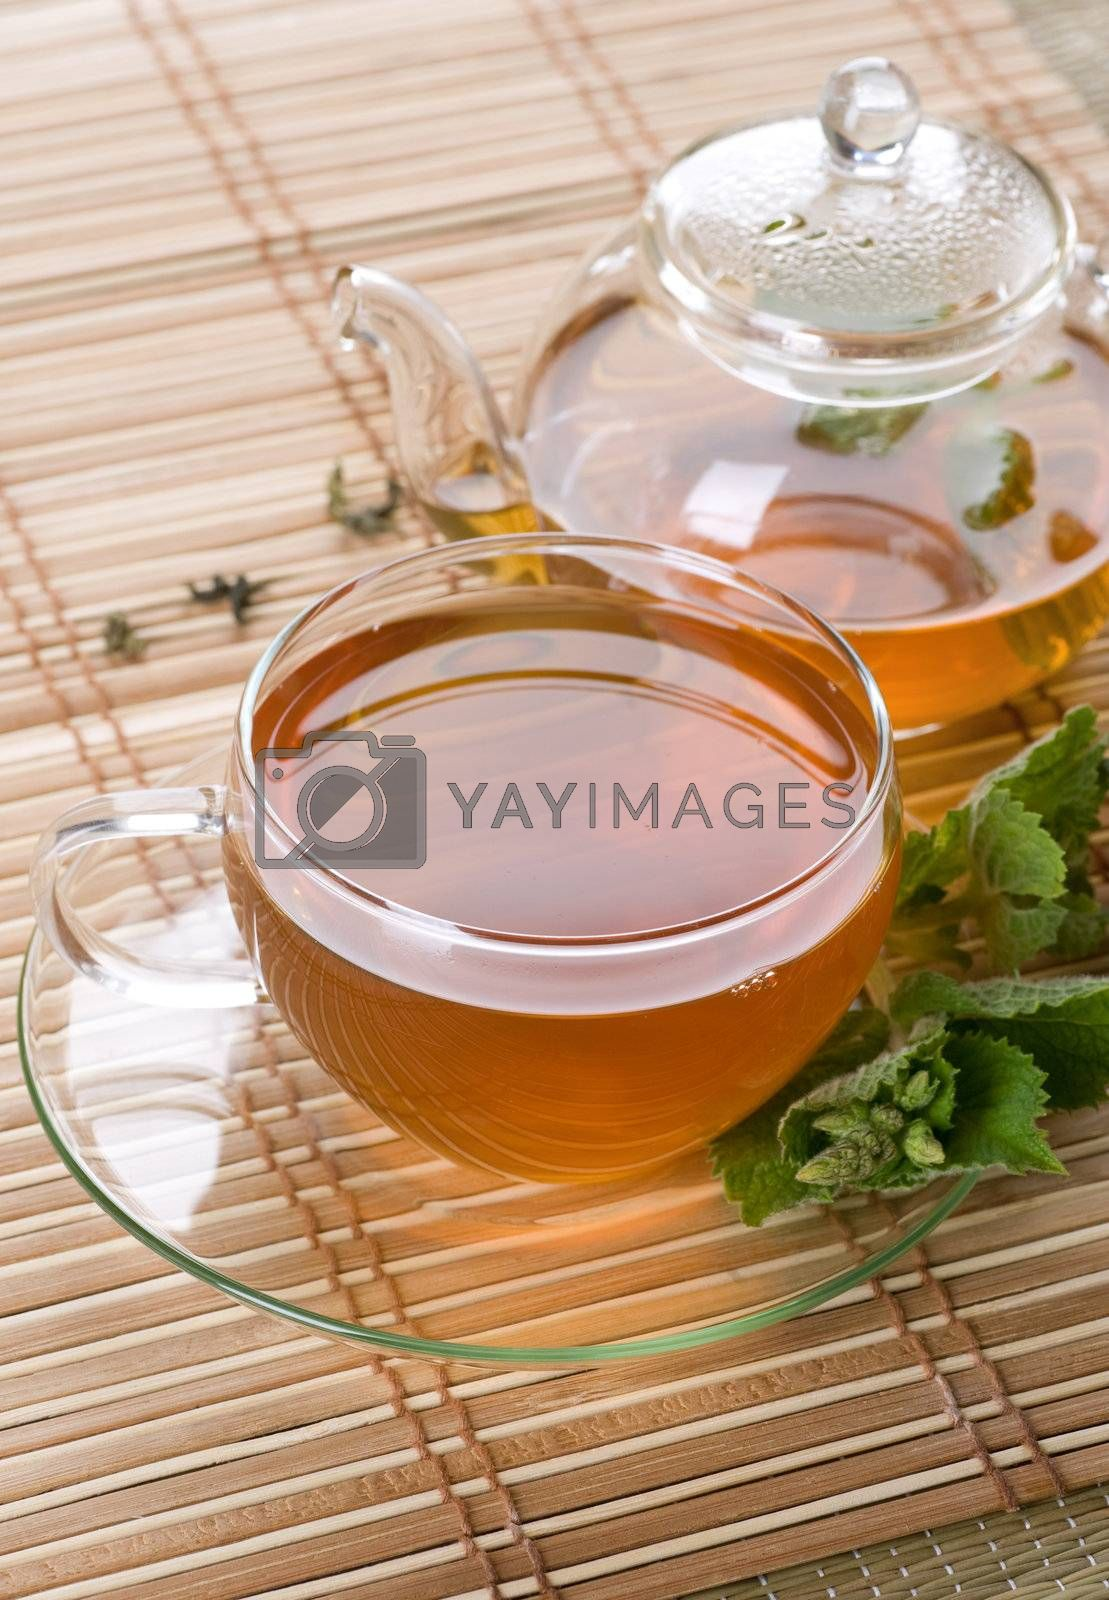 Healthy Mint Tea by Subbotina Anna